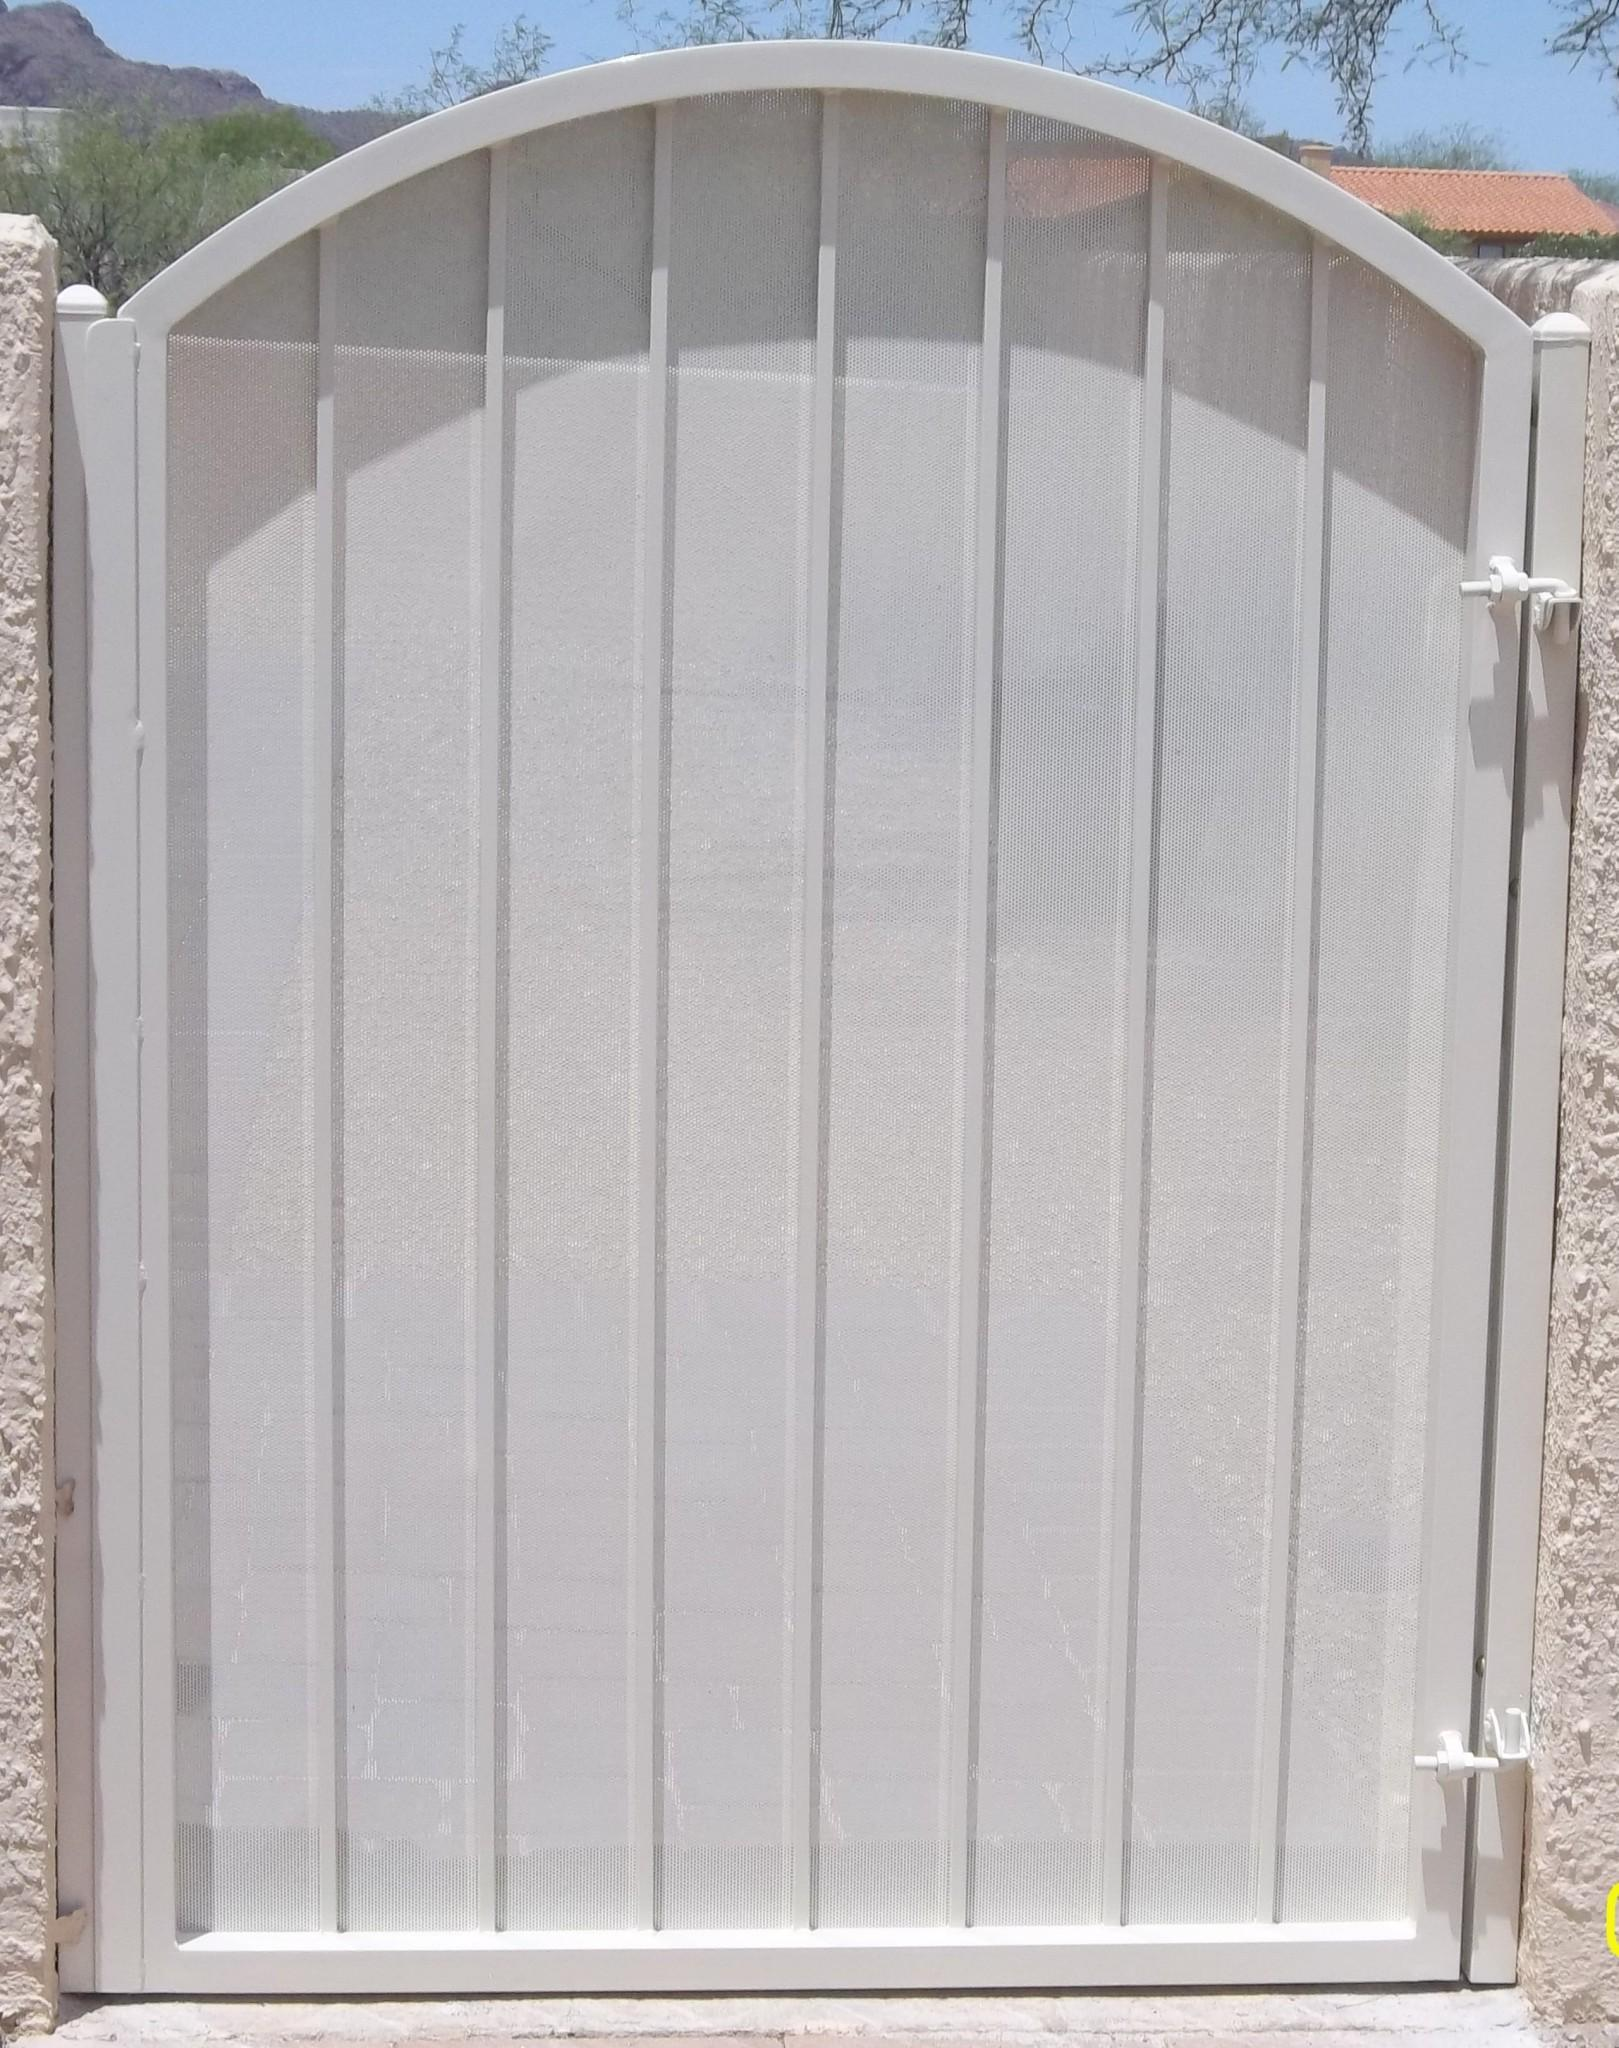 Wrought iron gate with metal backing white finish IG014